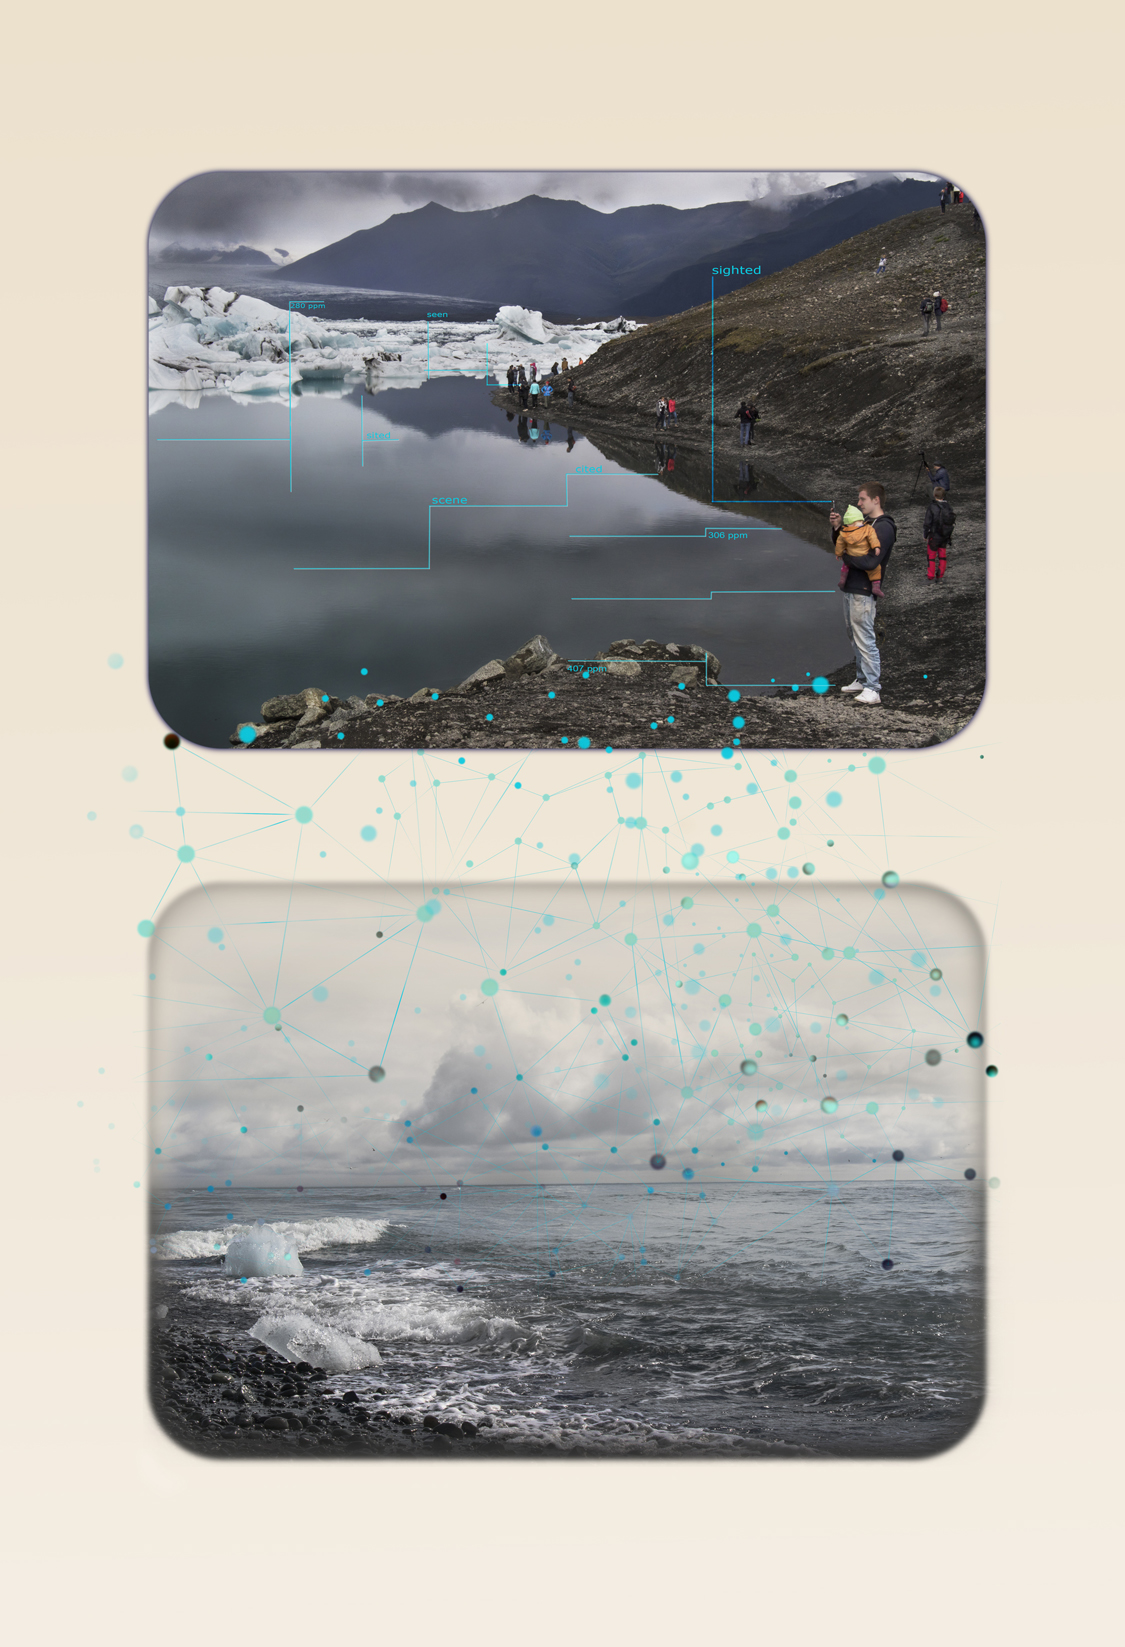 The Nature Of Cities An Idea Hive Green City Building Snake Skeleton Diagram Beautiful Scenery Photography Networking With At Two Outlet Glaciers Part Vatnajkull Southeast Iceland Photo Marguerite Perret